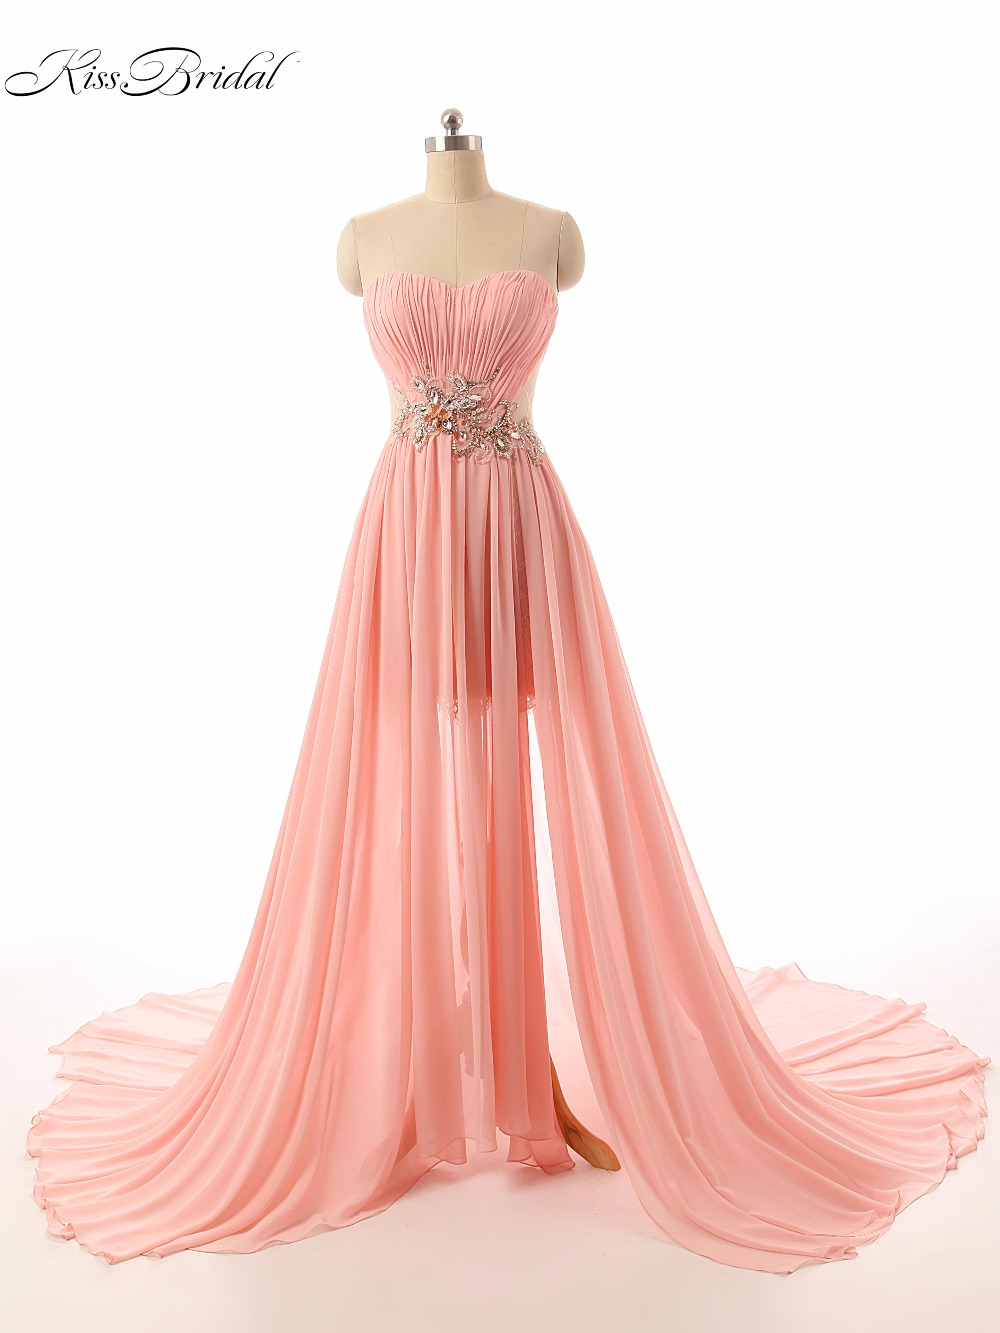 2017 New Fashion High Split Prom Dresses Robe De Soiree Beaded Sweetheart Sleeveless Sweep Train Formal Evening Party Gown